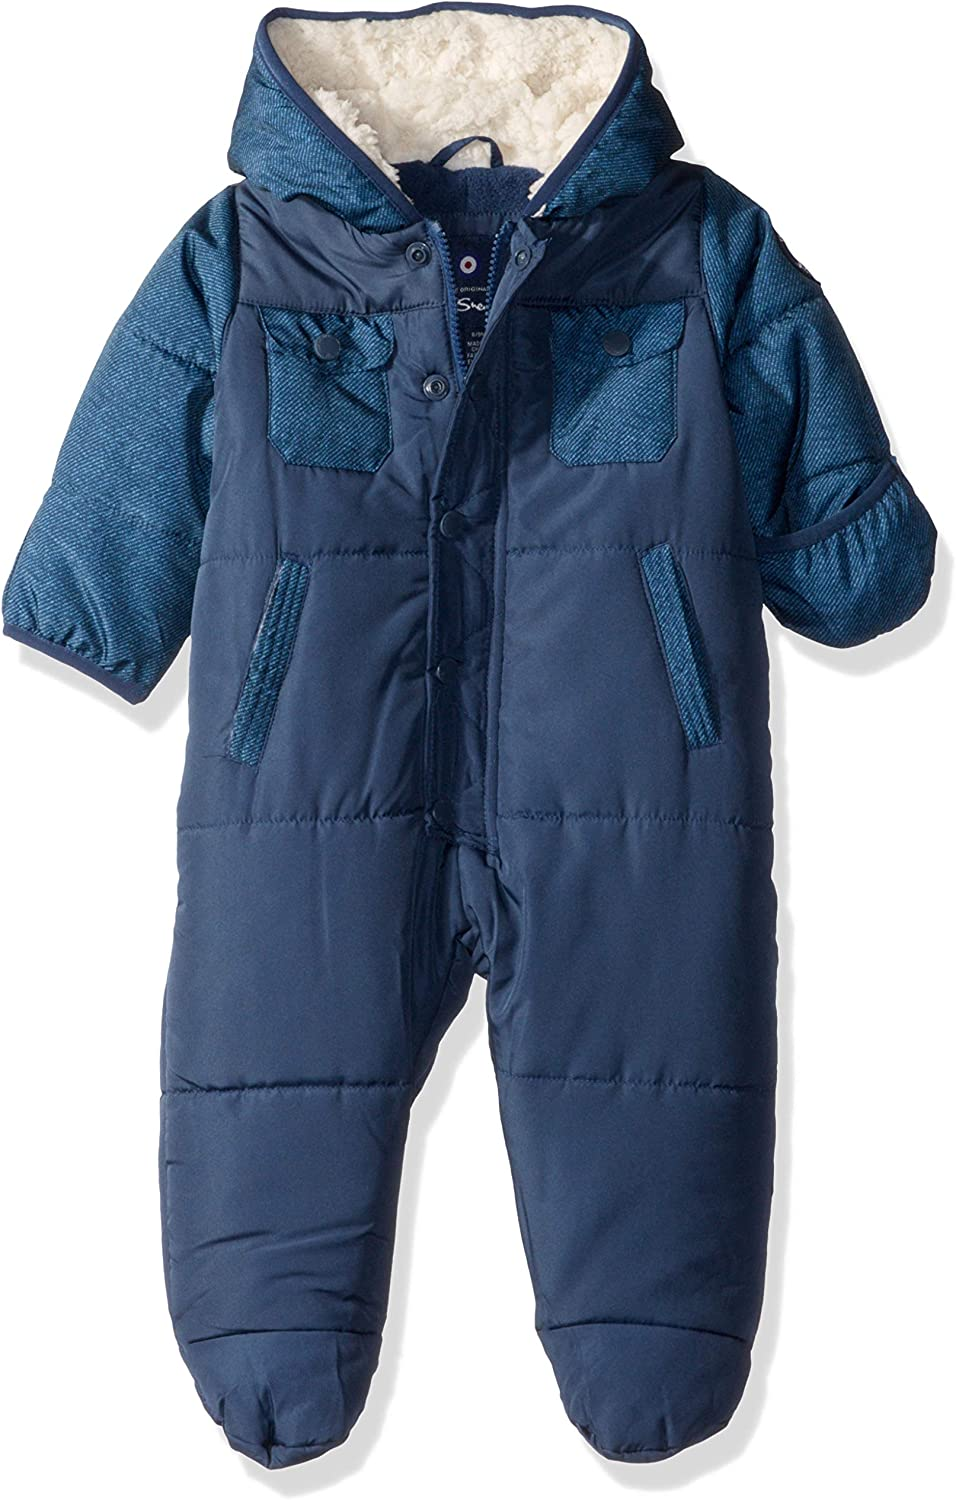 Ben Sherman Baby Jungen Pram More Styles Available Daunenalternative Jacke Marineblau Denim 18 Monate Bekleidung